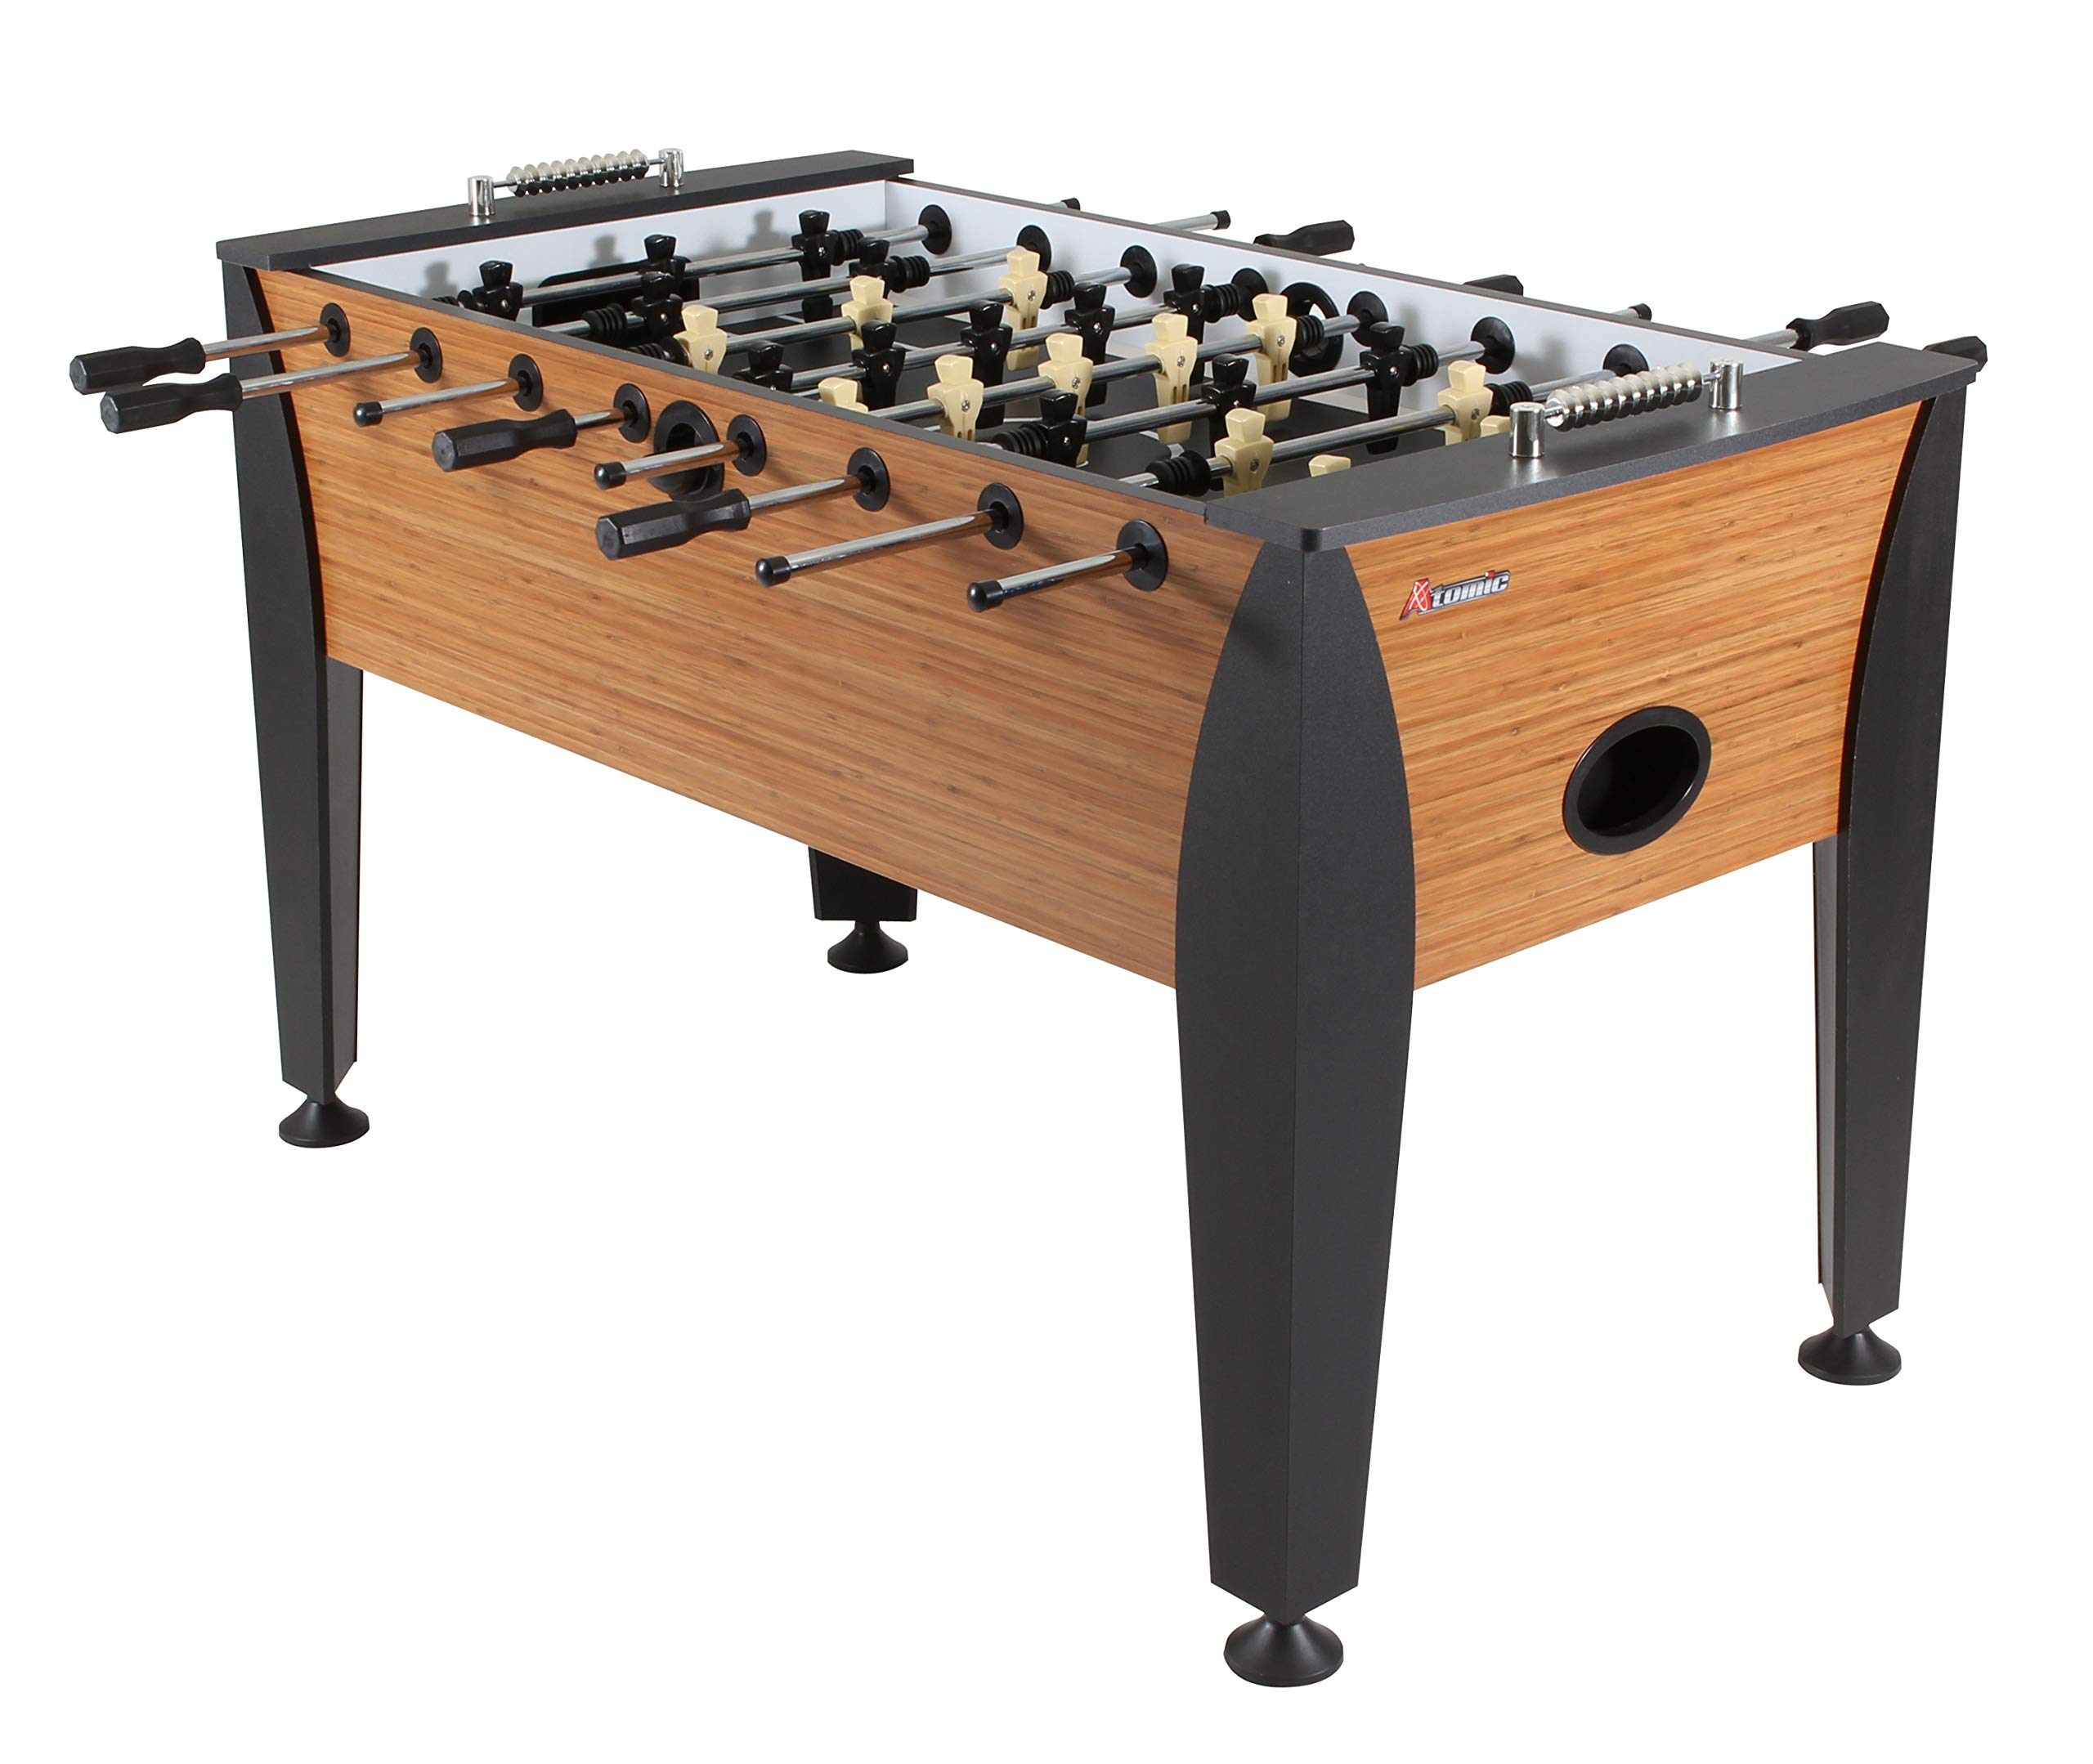 Atomic Pro Force 56'' Foosball Table with Internal Ball Return and Ball Entry, Leg Levelers, and Heavy-Duty Legs by Atomic